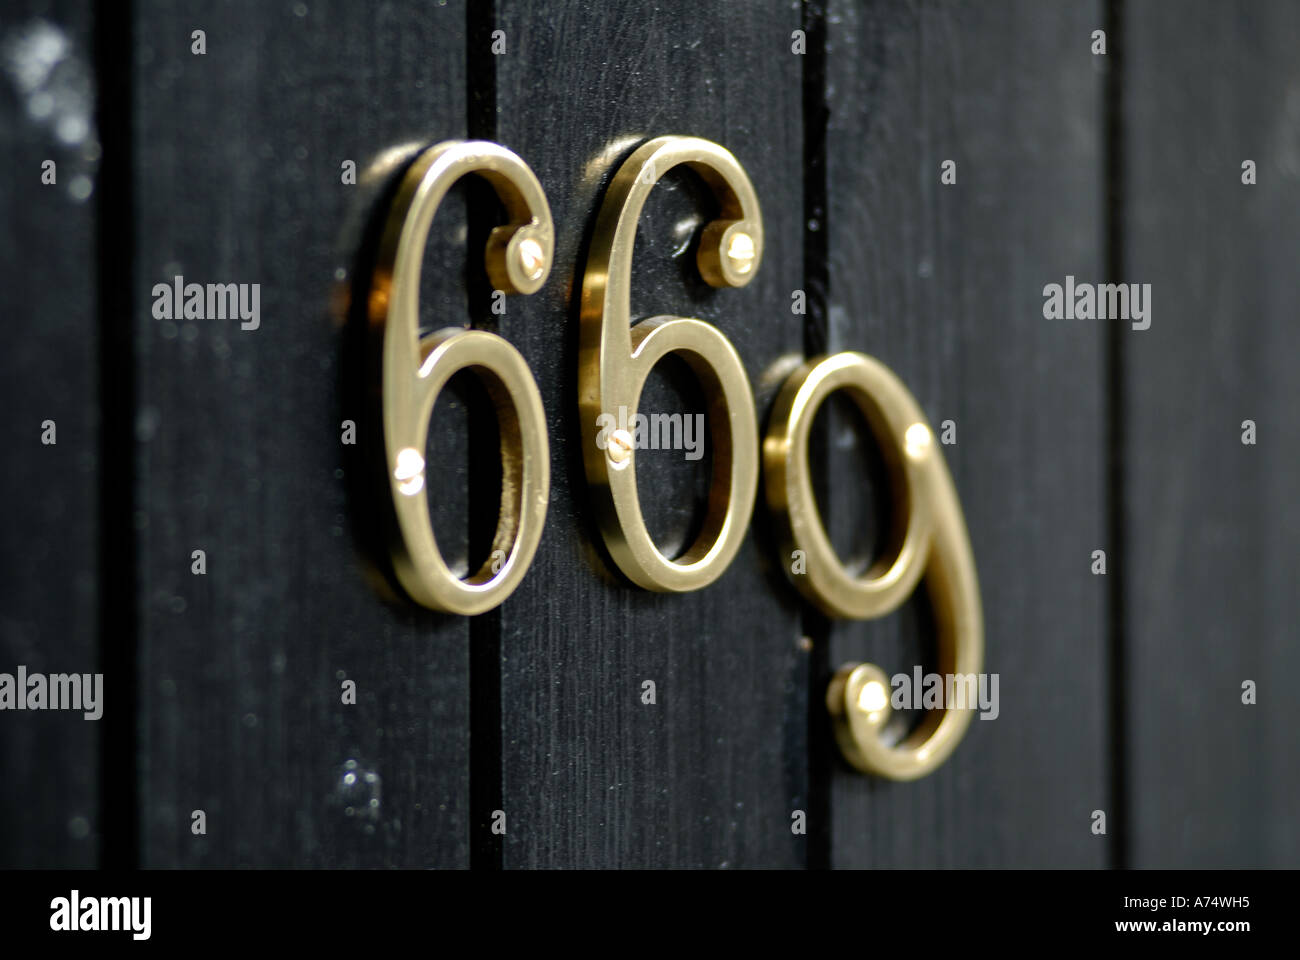 Brass door number 669 on a wooden door